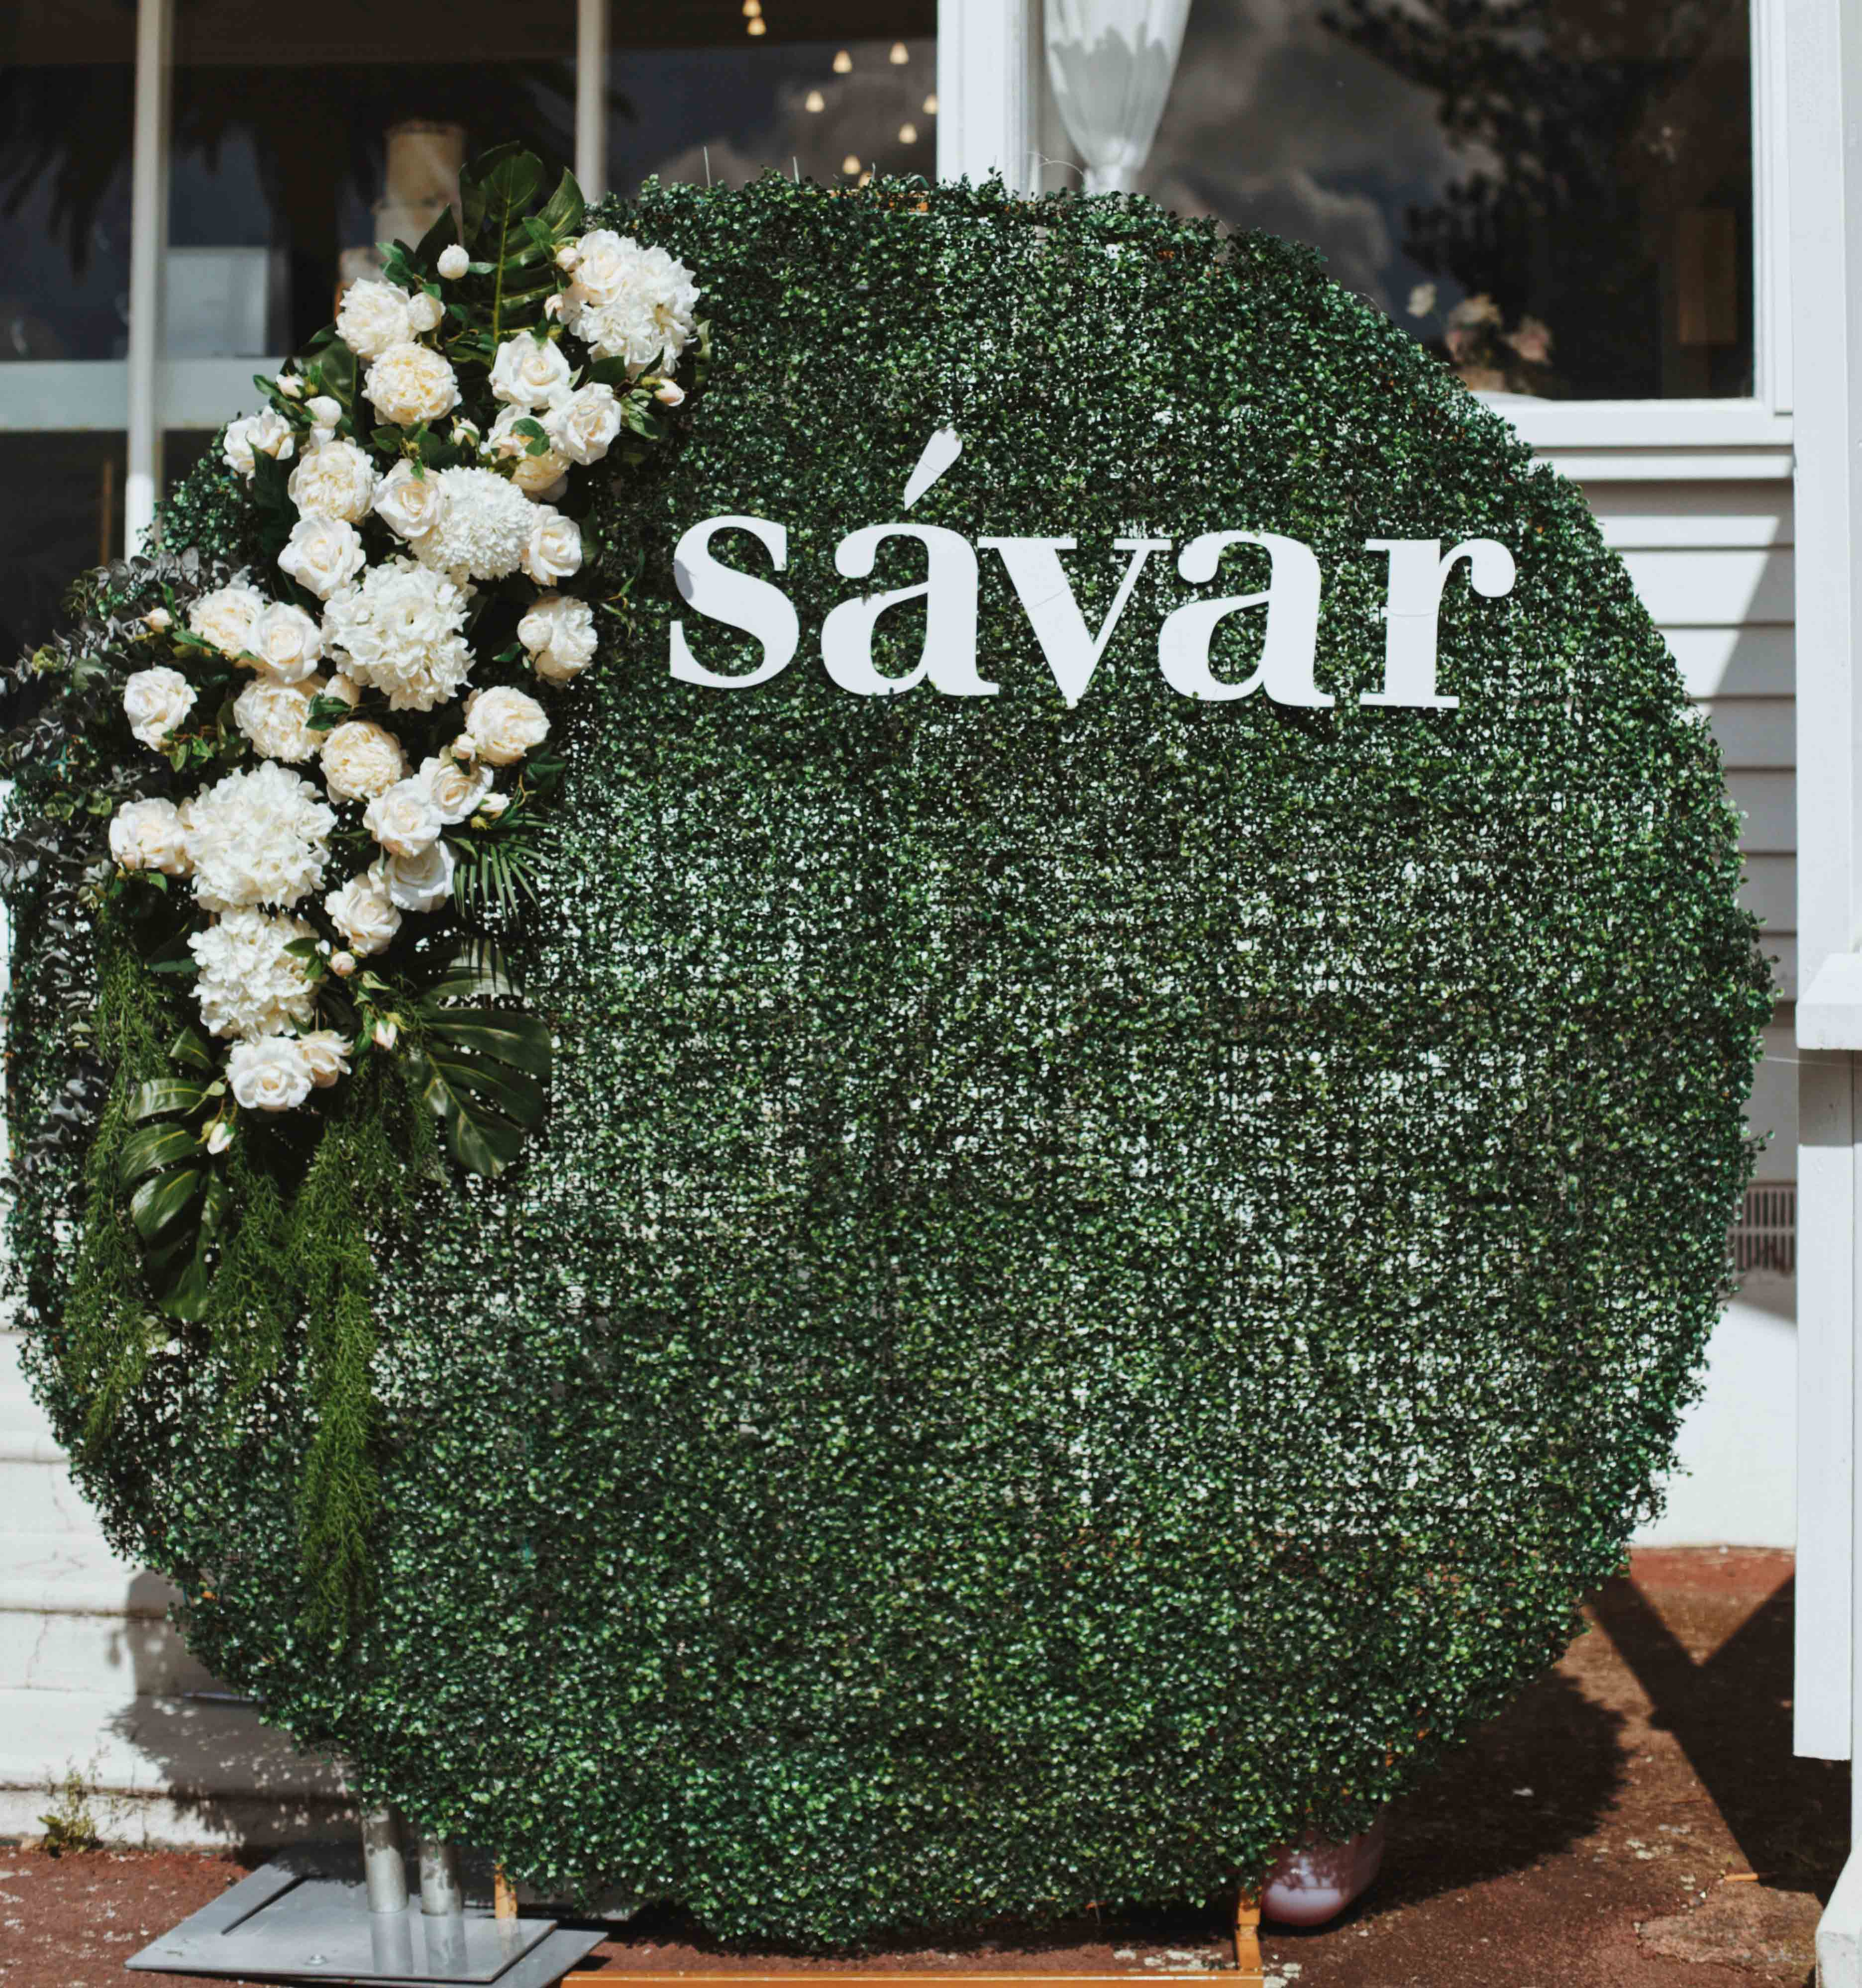 Hedge Wall and Sign by Luxe Dream Event Hire / Flowers by Luxe Dream Floral Studio